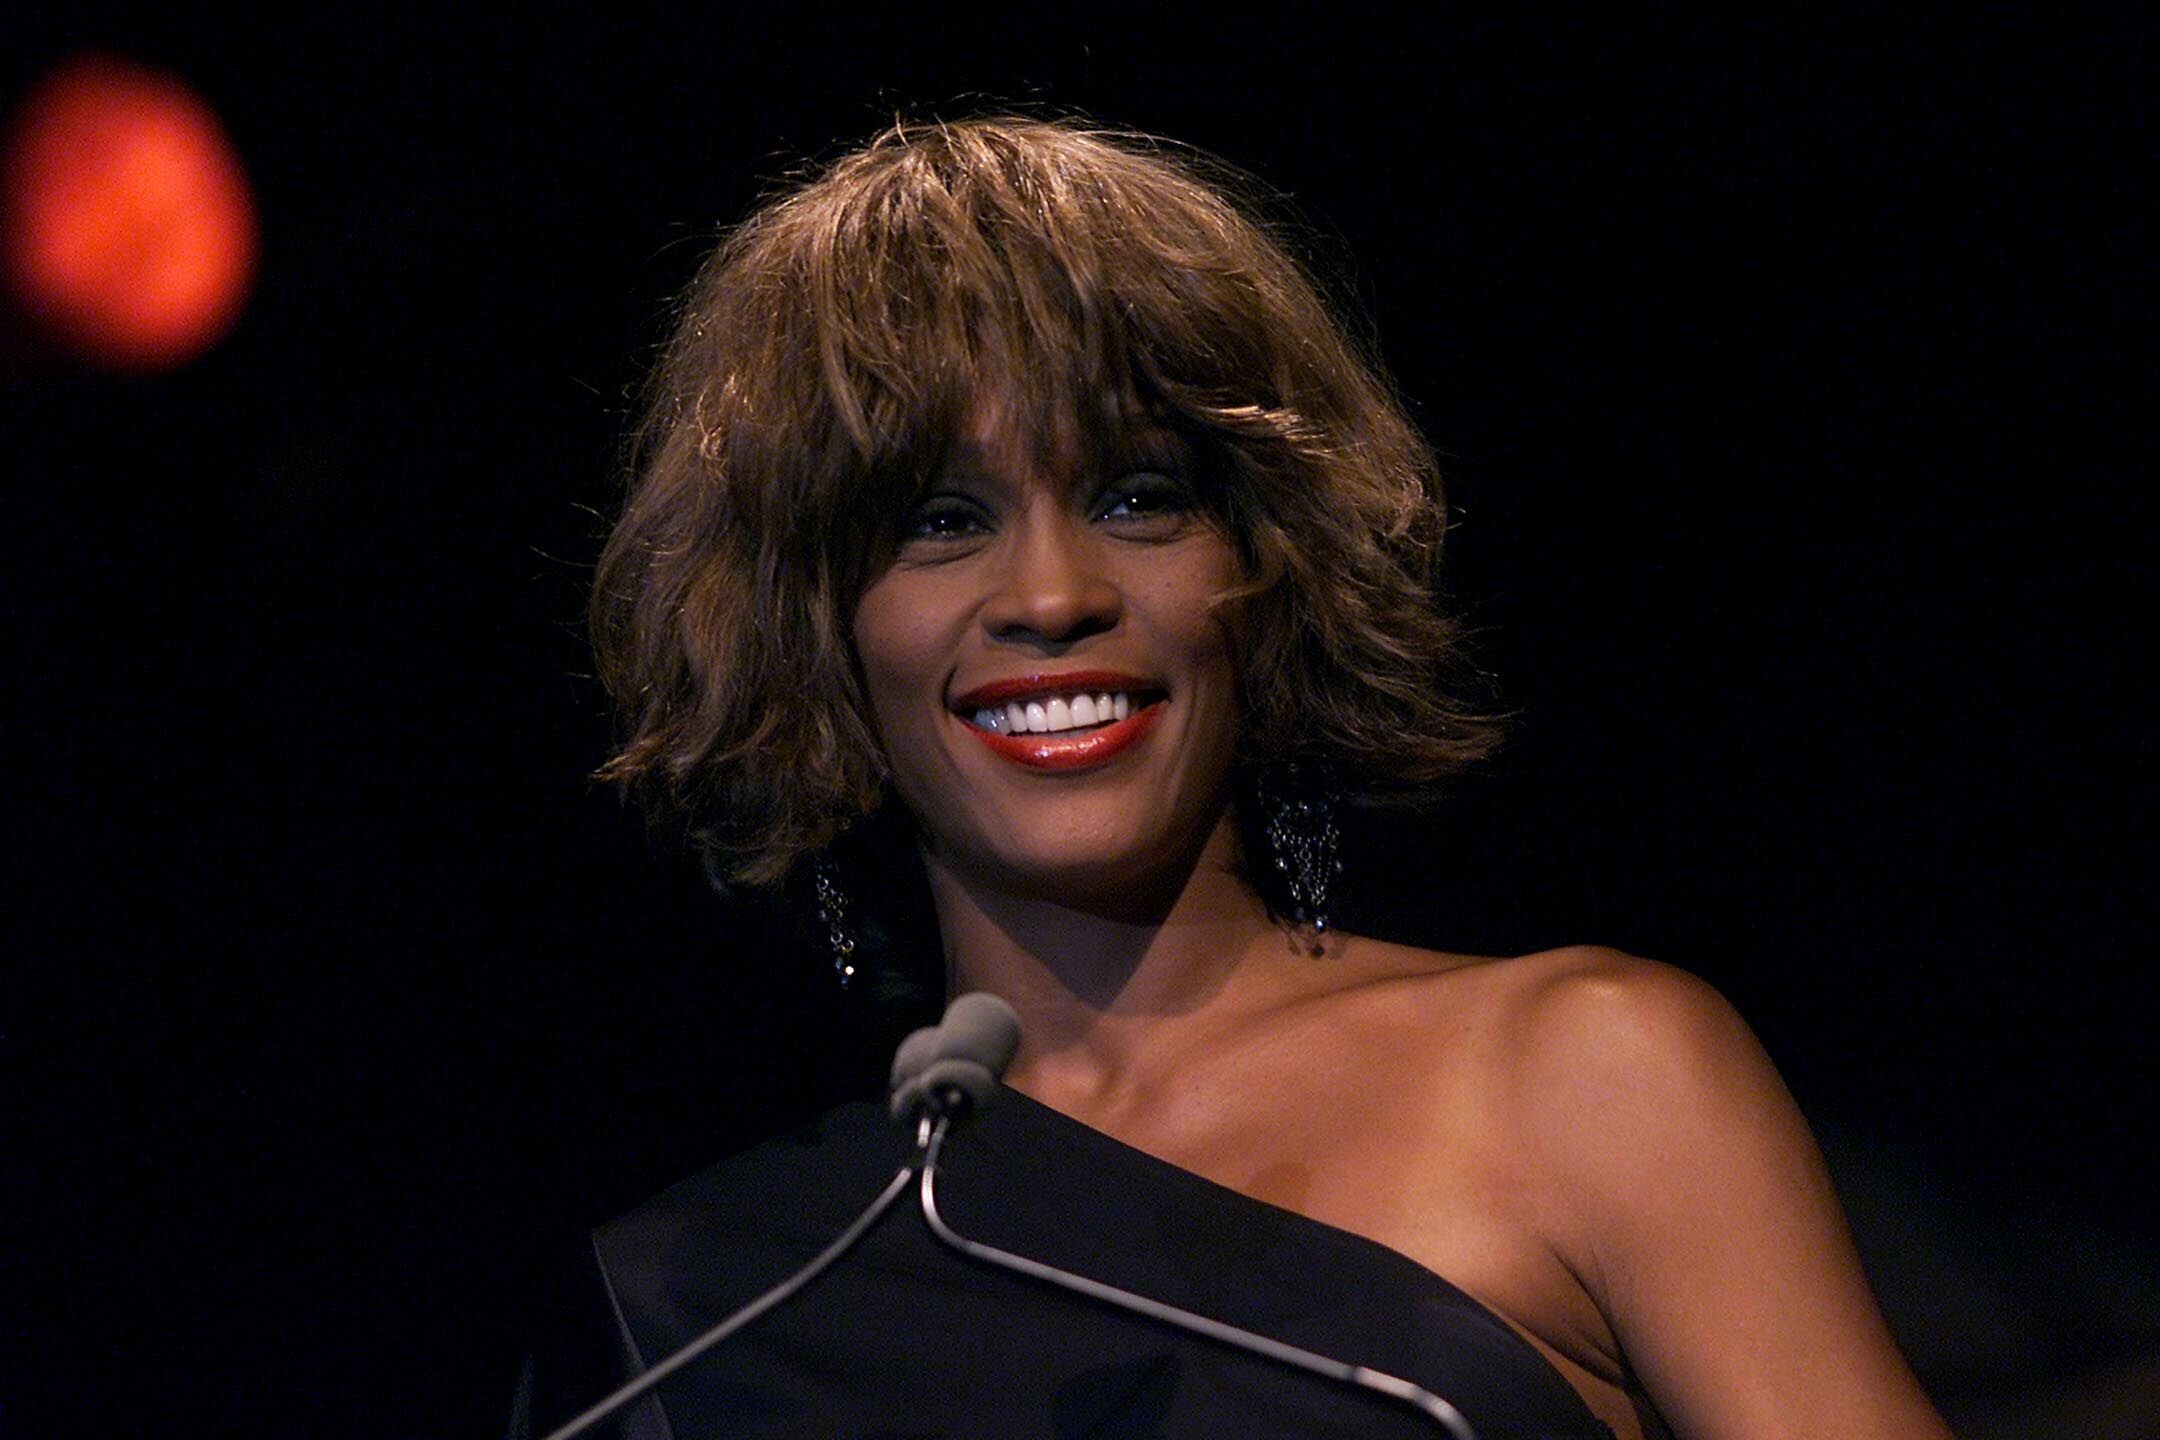 Whitney Houston at the Songwriters Hall of Fame 32nd Annual Awards in New York in 2001 | Source: Getty Images